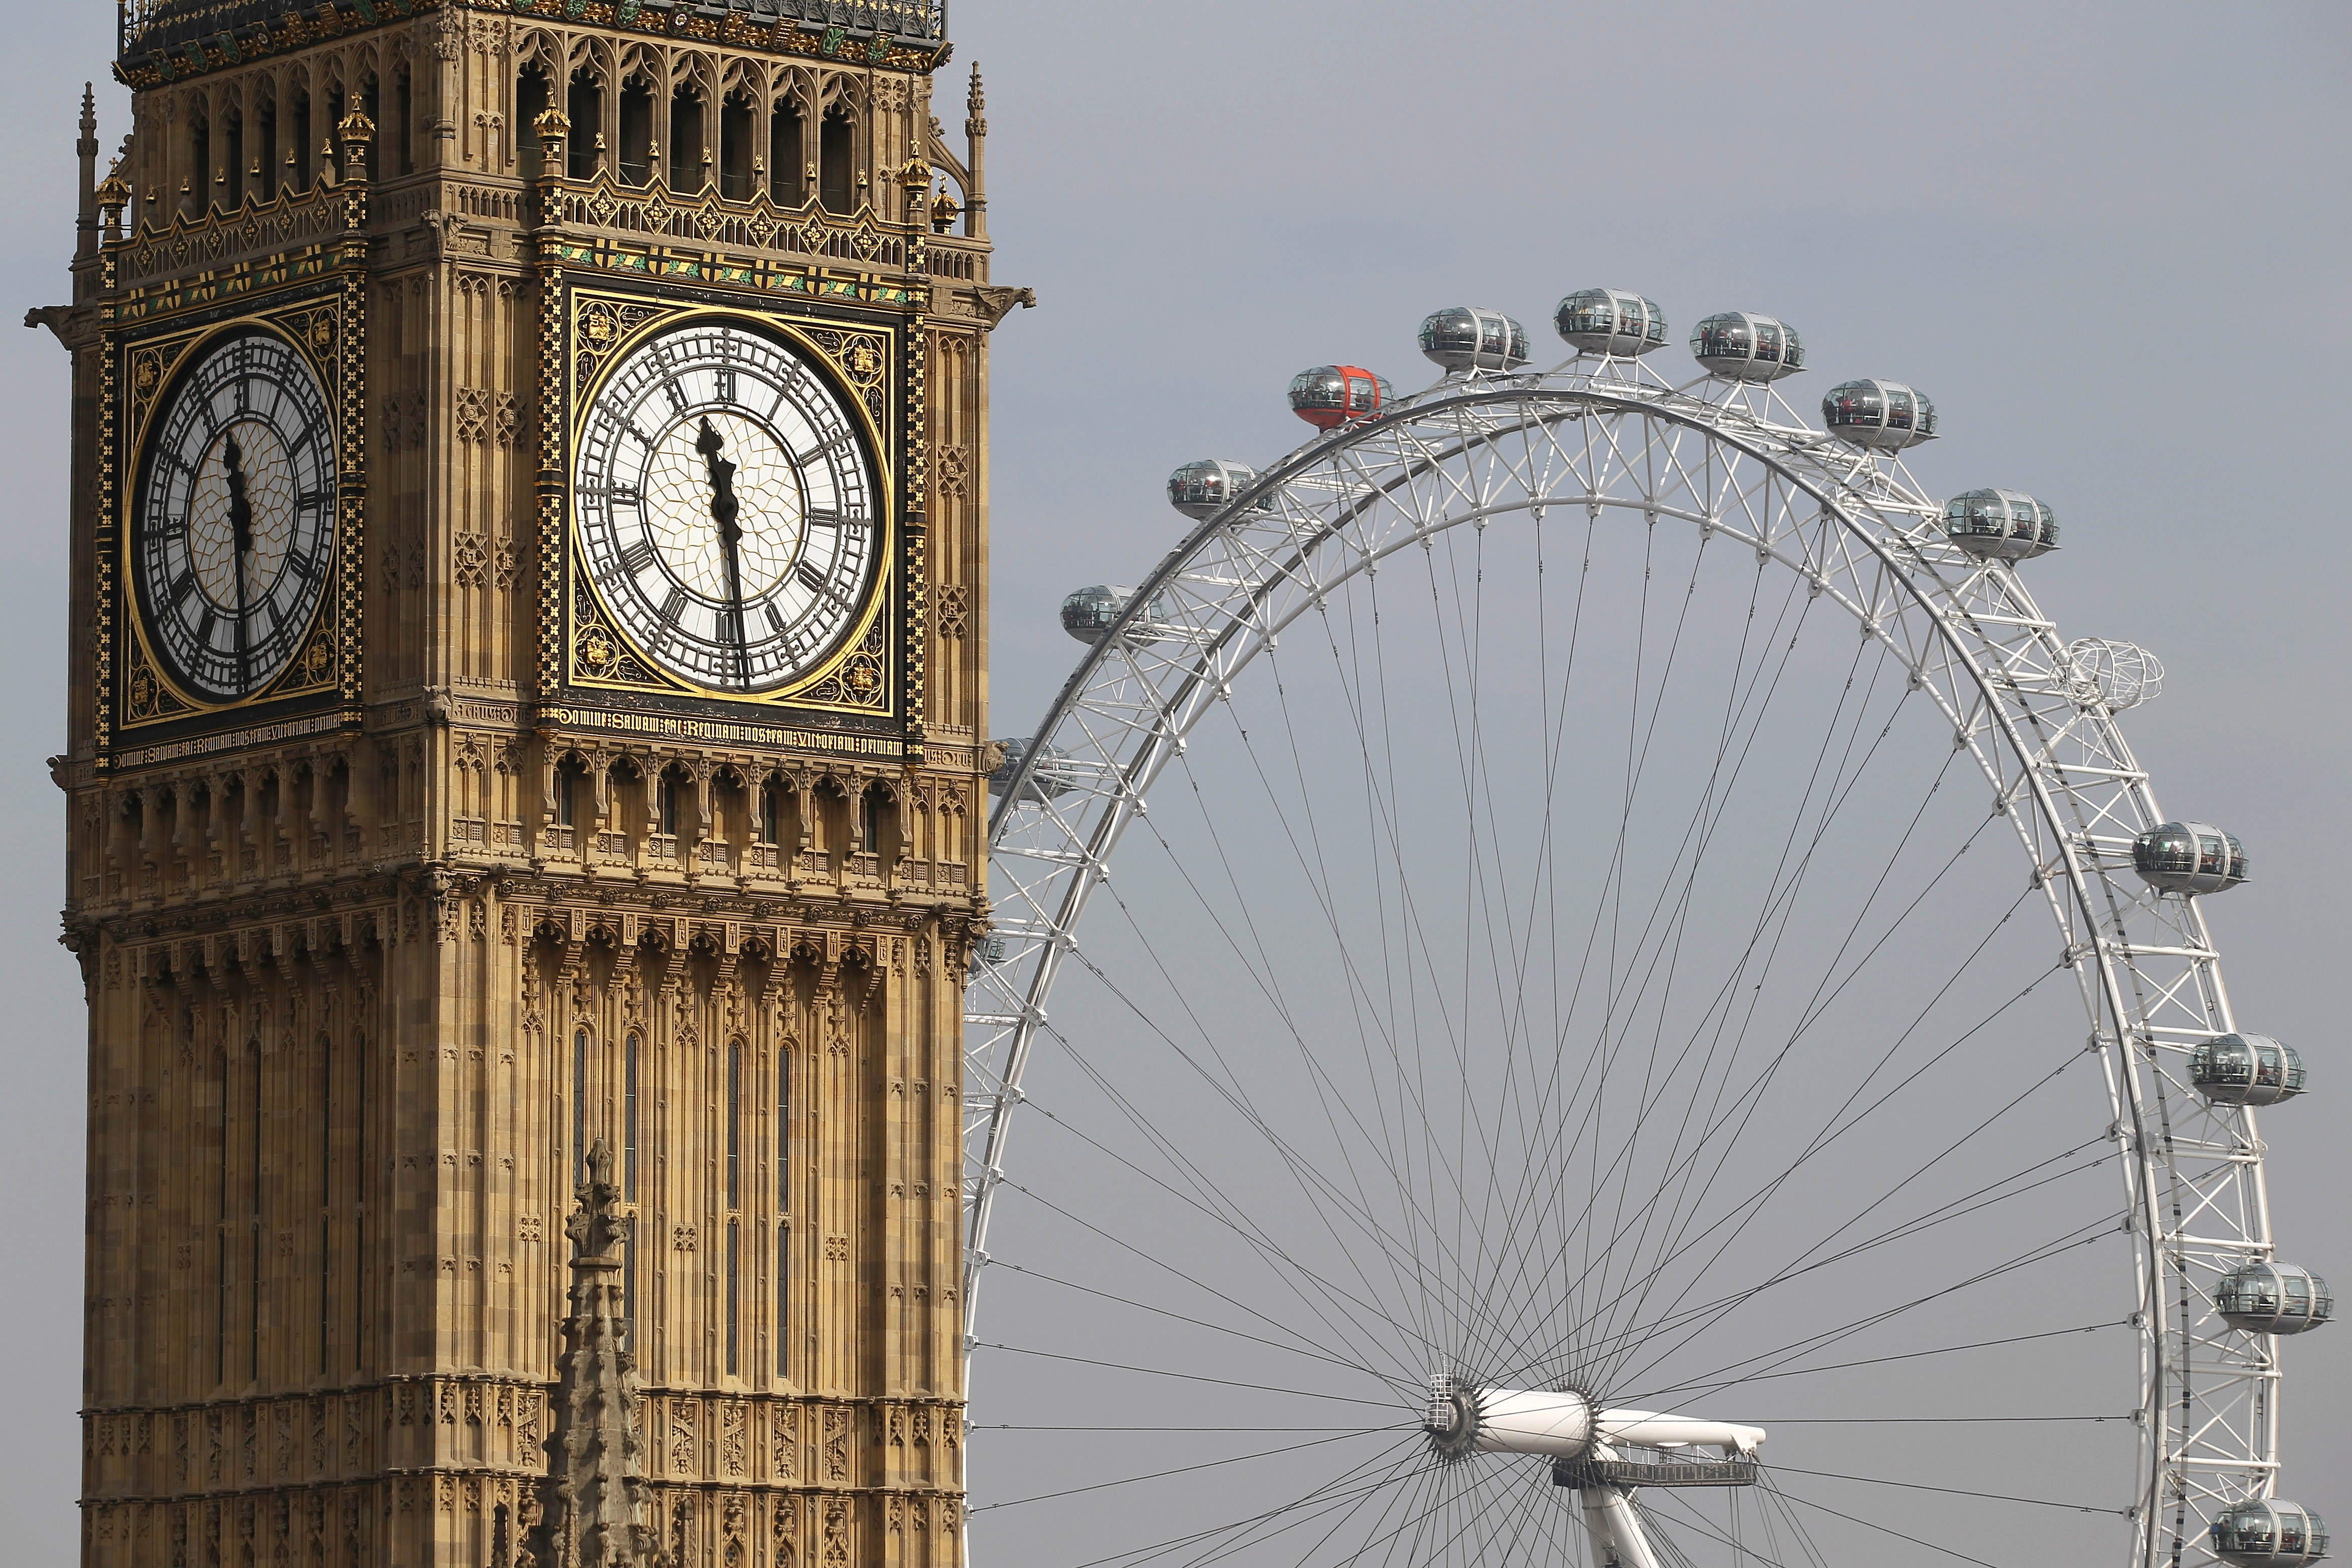 Twitter Nails The Frustration And Confusion We Feel When Clocks Go Forward GettyImages 141704993